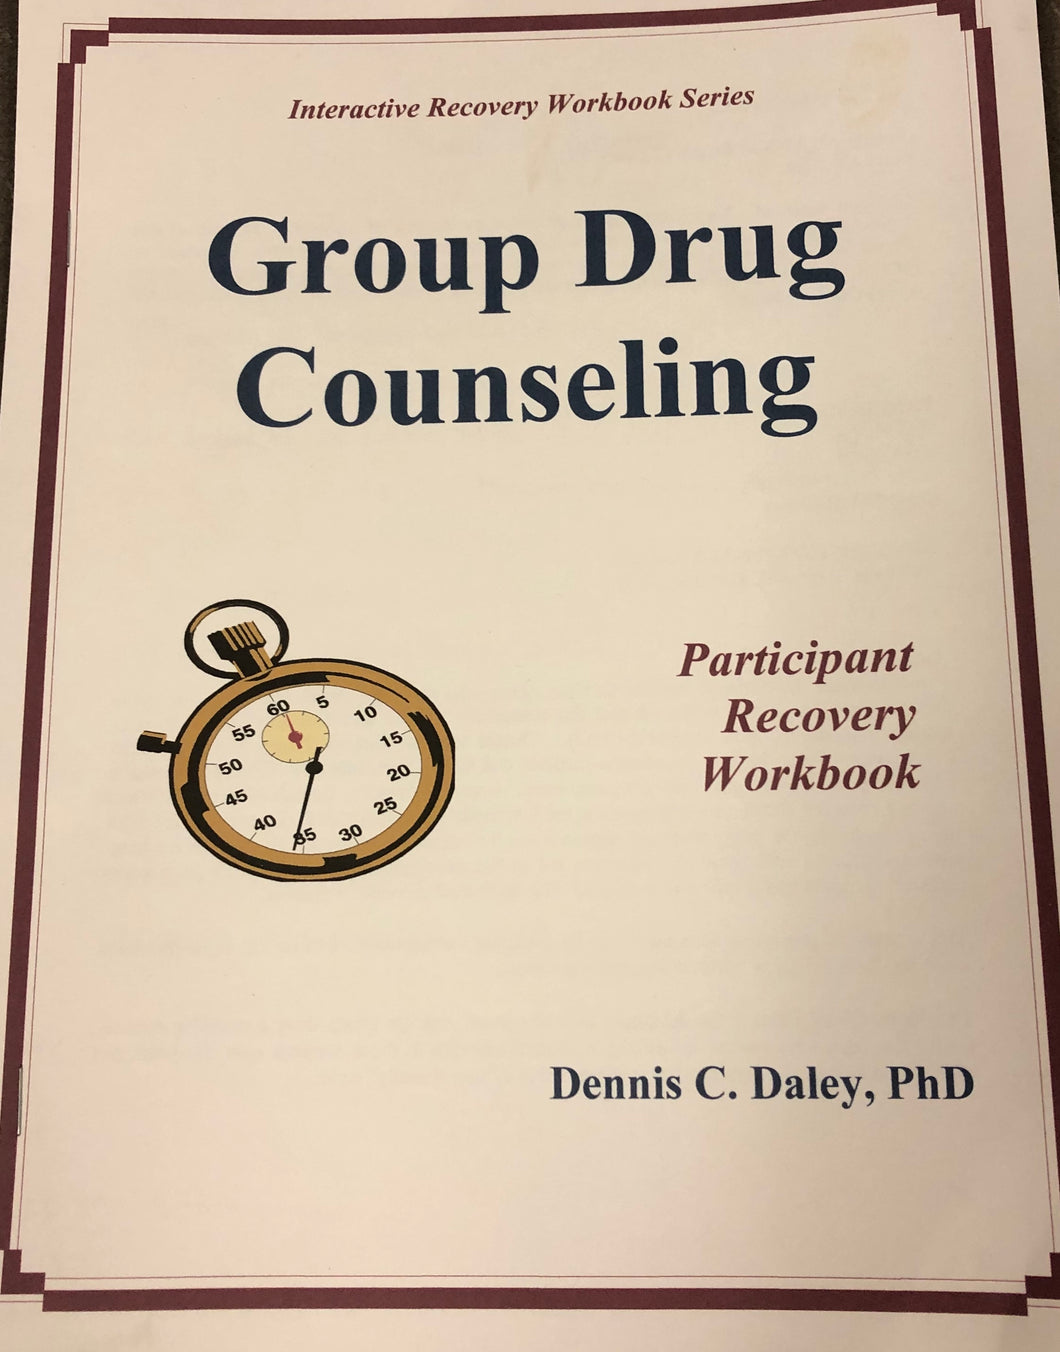 Group Drug Counseling